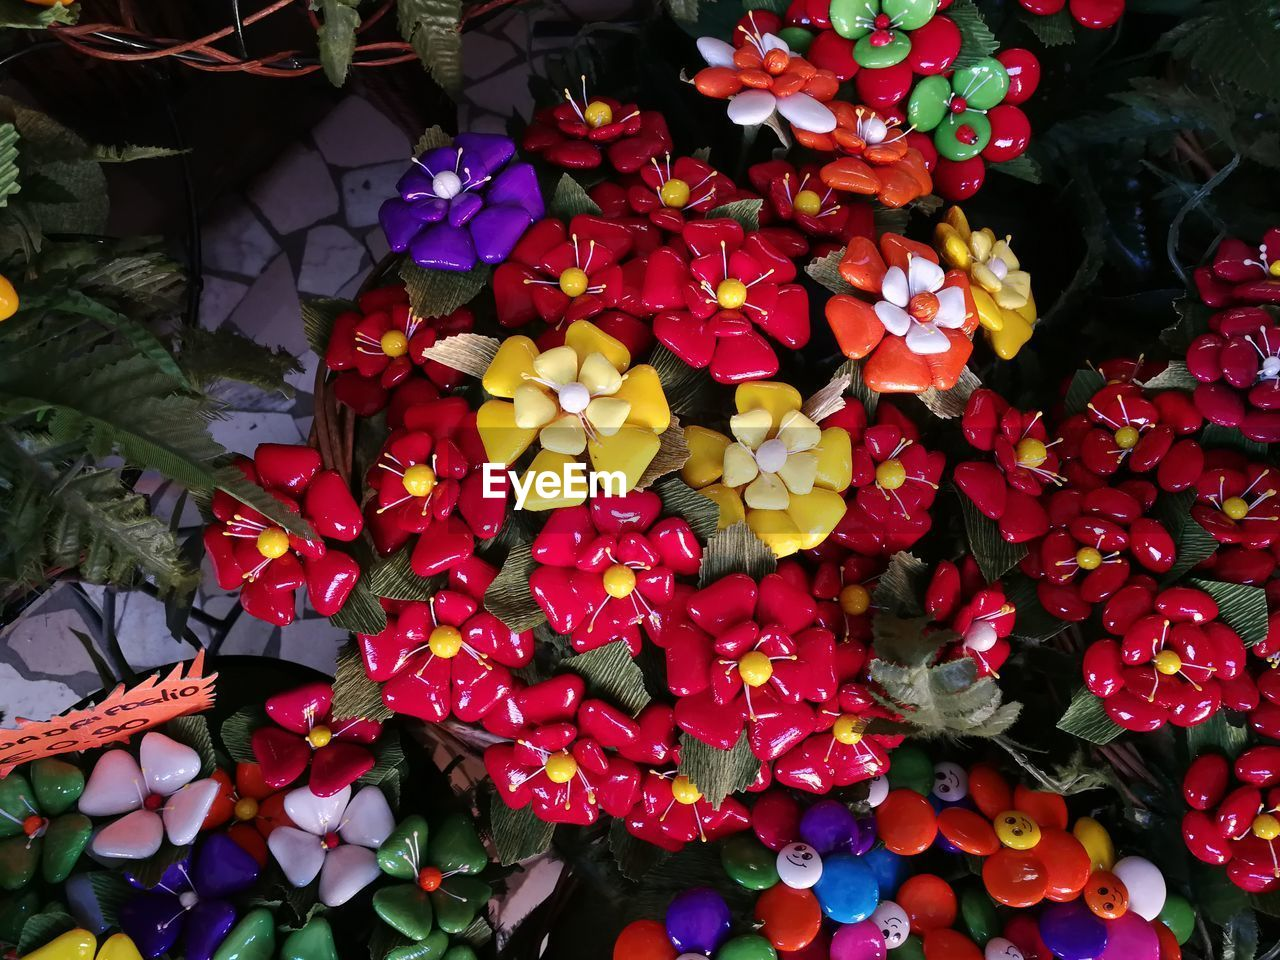 flower, flowering plant, plant, beauty in nature, petal, freshness, growth, flower head, fragility, inflorescence, vulnerability, close-up, nature, no people, red, high angle view, day, plant part, multi colored, outdoors, bunch of flowers, bouquet, flower arrangement